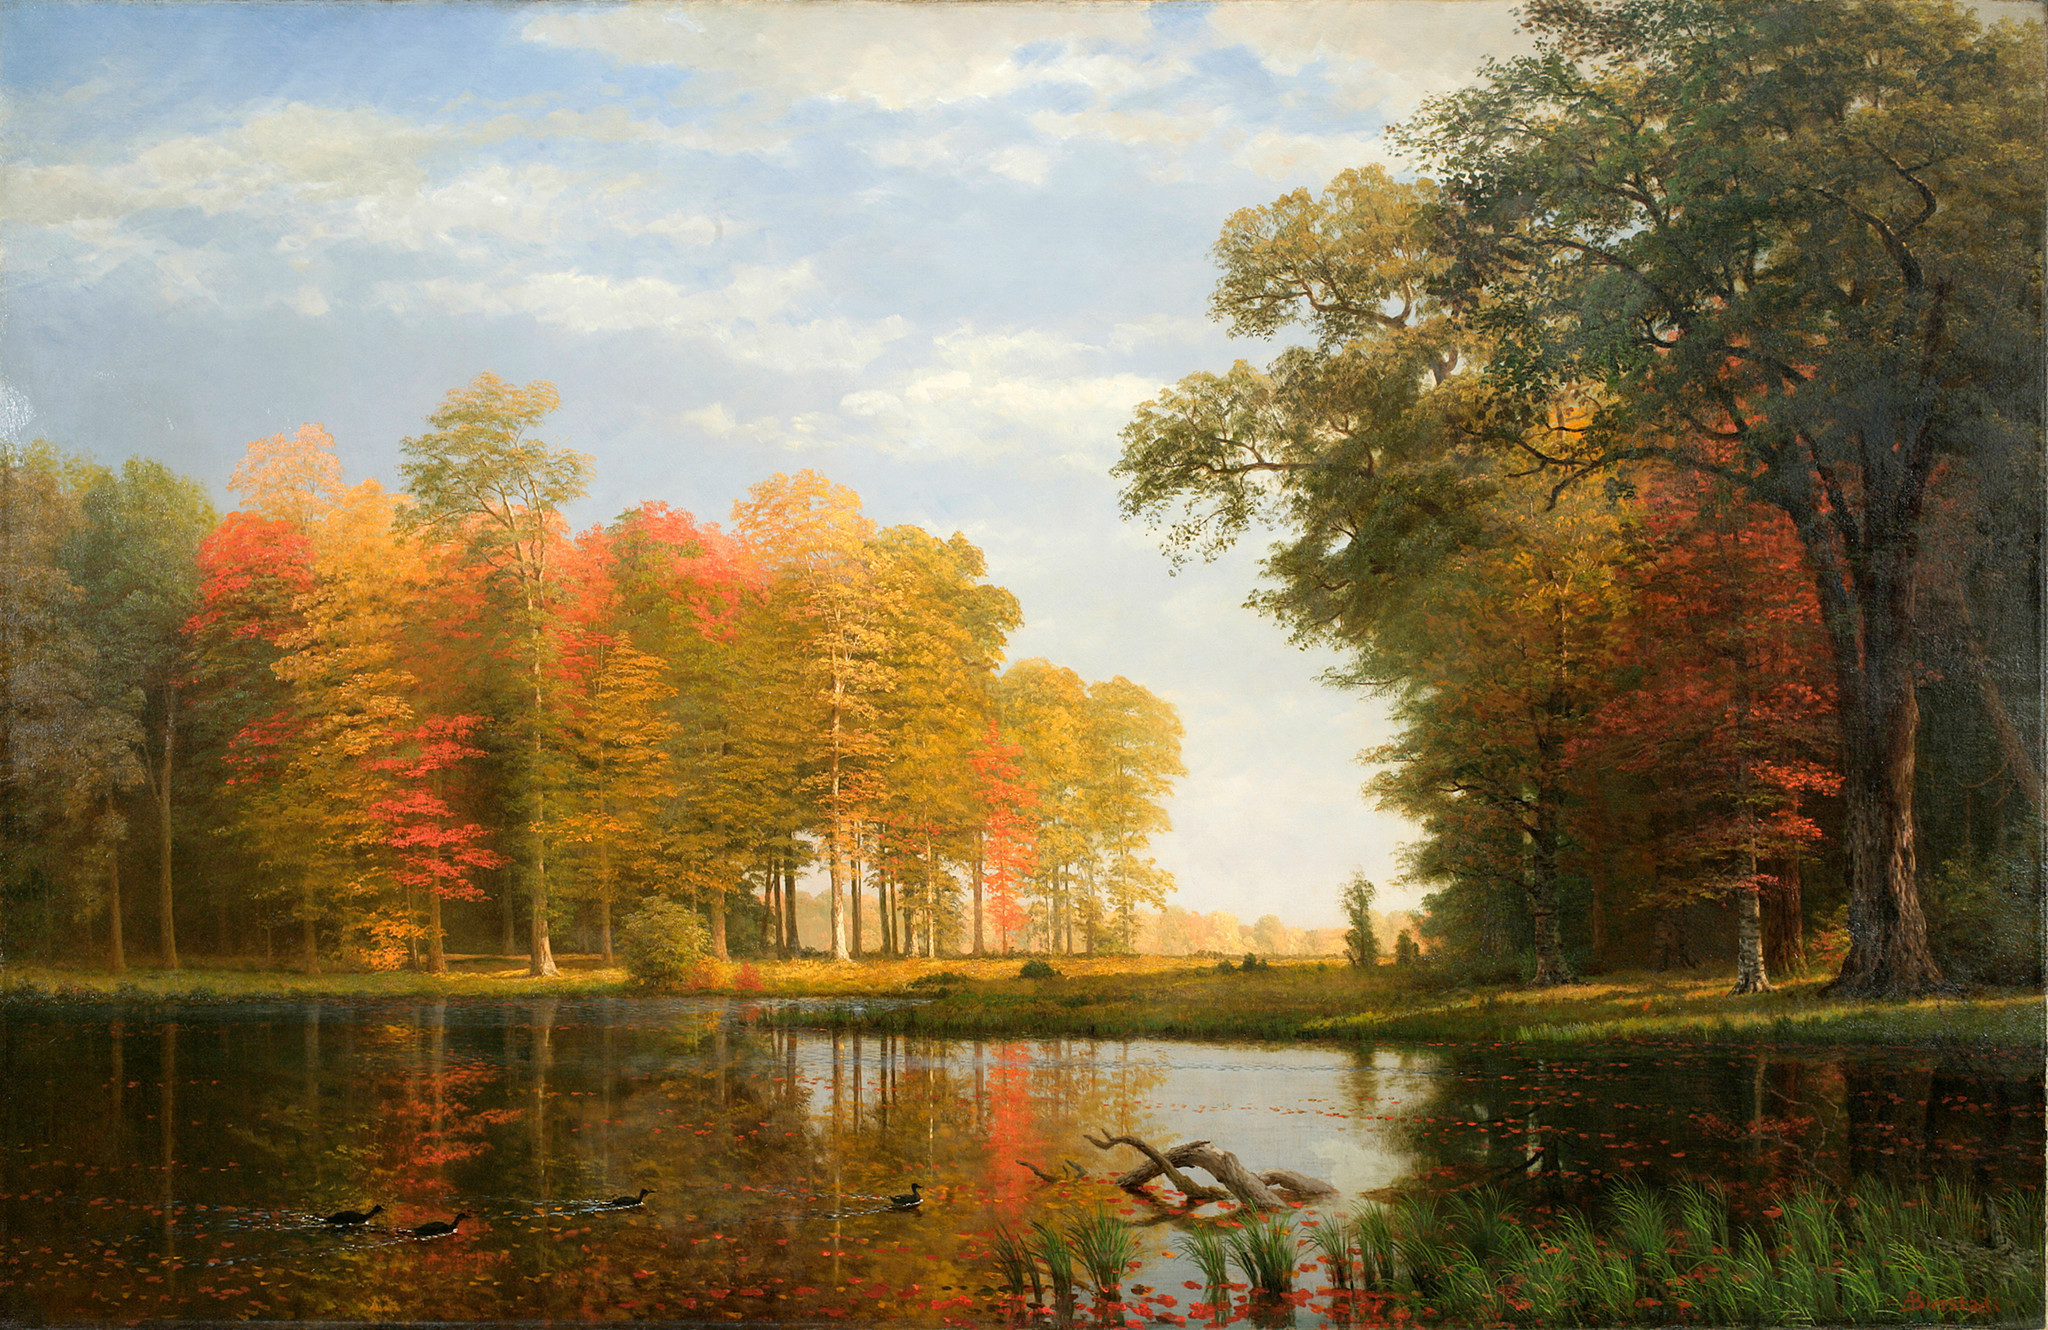 Allentown Art Museum Shines Light On Hudson River School Landscapes